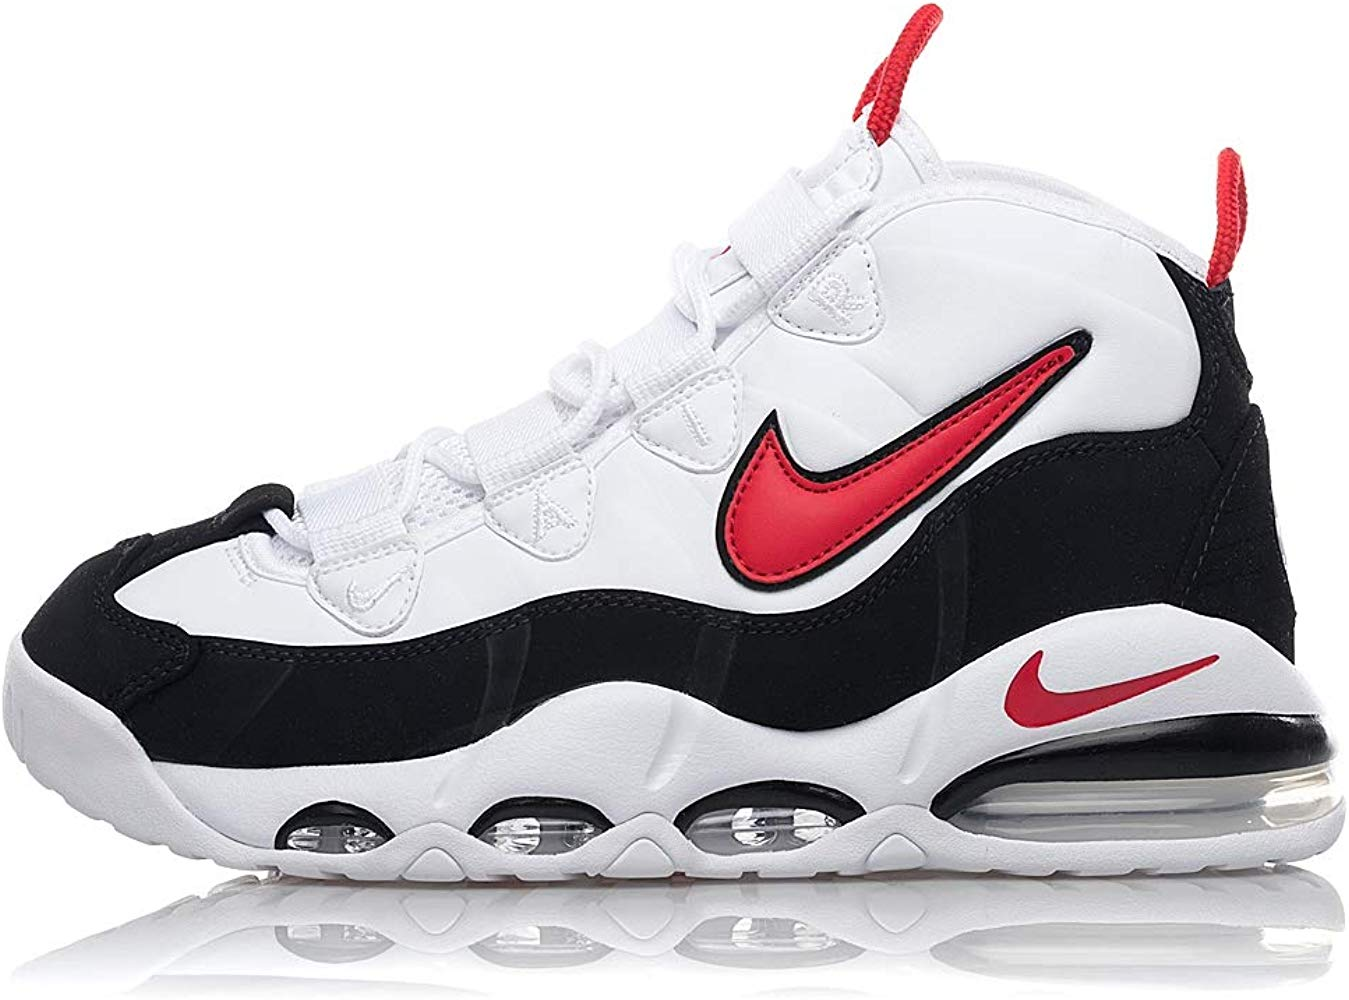 Blue Fury Nike Air Max Uptempo 95 coming in April   Sneaker